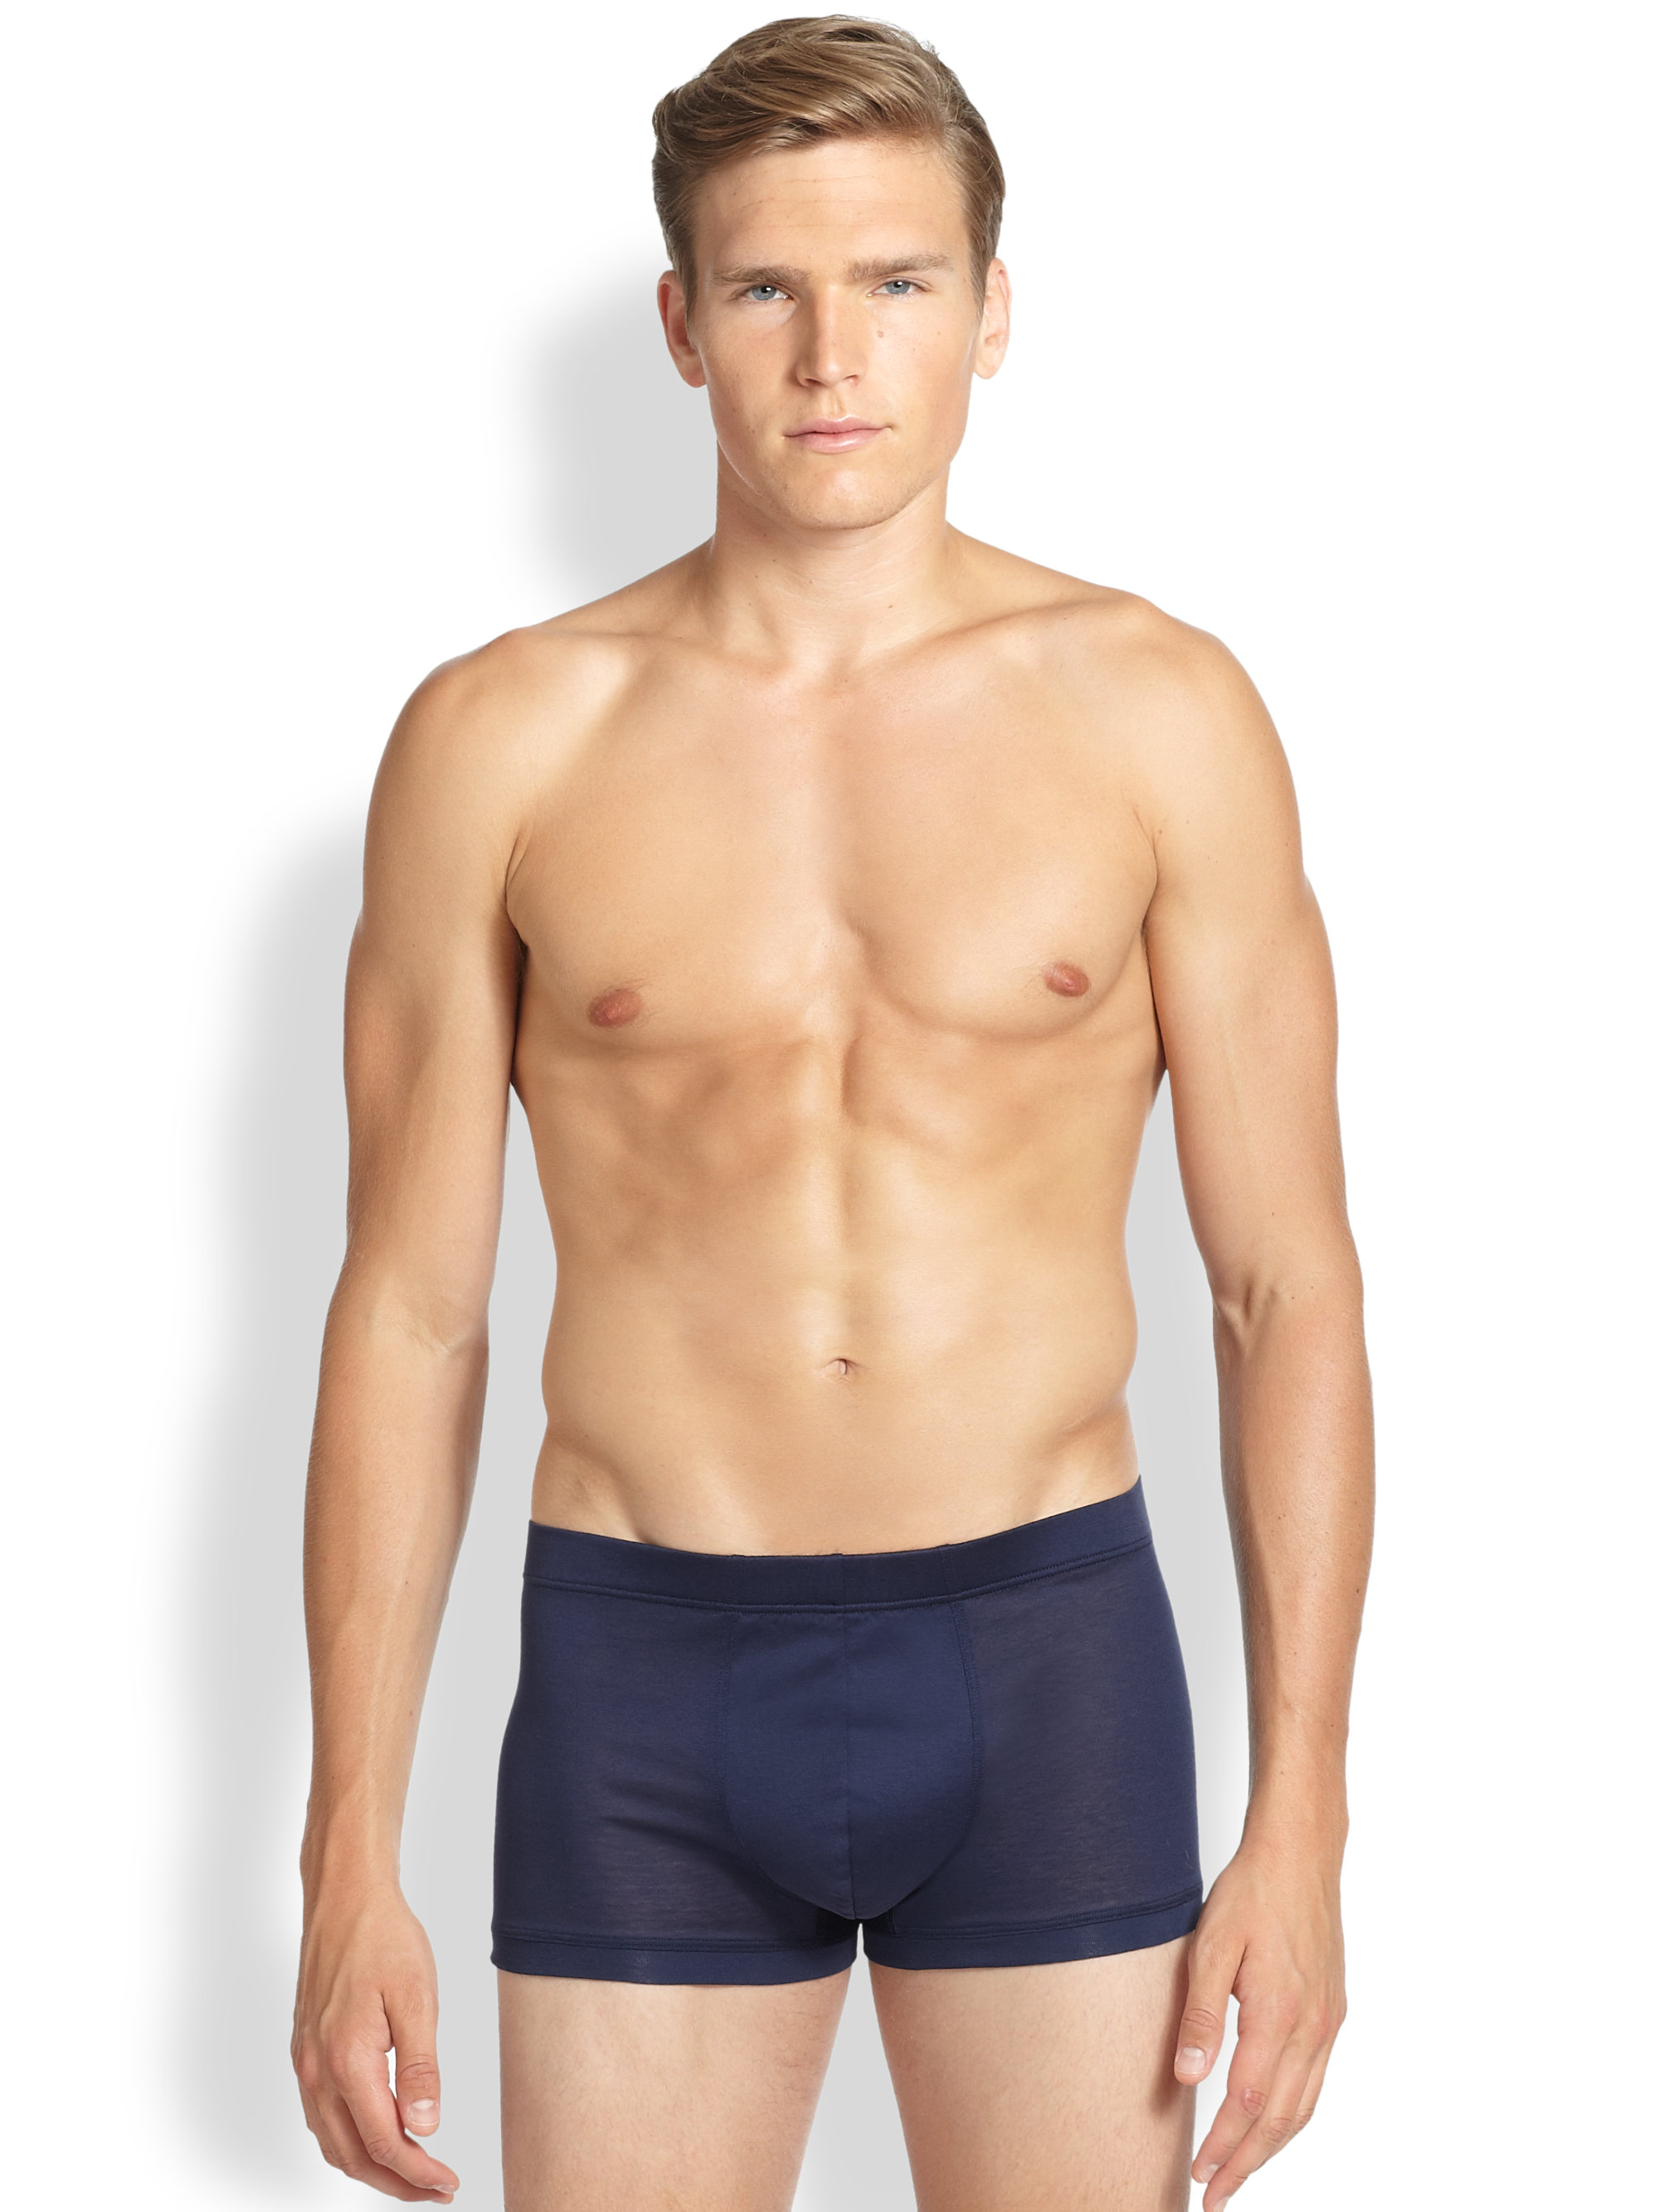 Mens Boxer Shorts Hanro Drop Shipping Free Shipping Best Prices Buy Cheap Shop Offer Professional Online uYrrmvCL